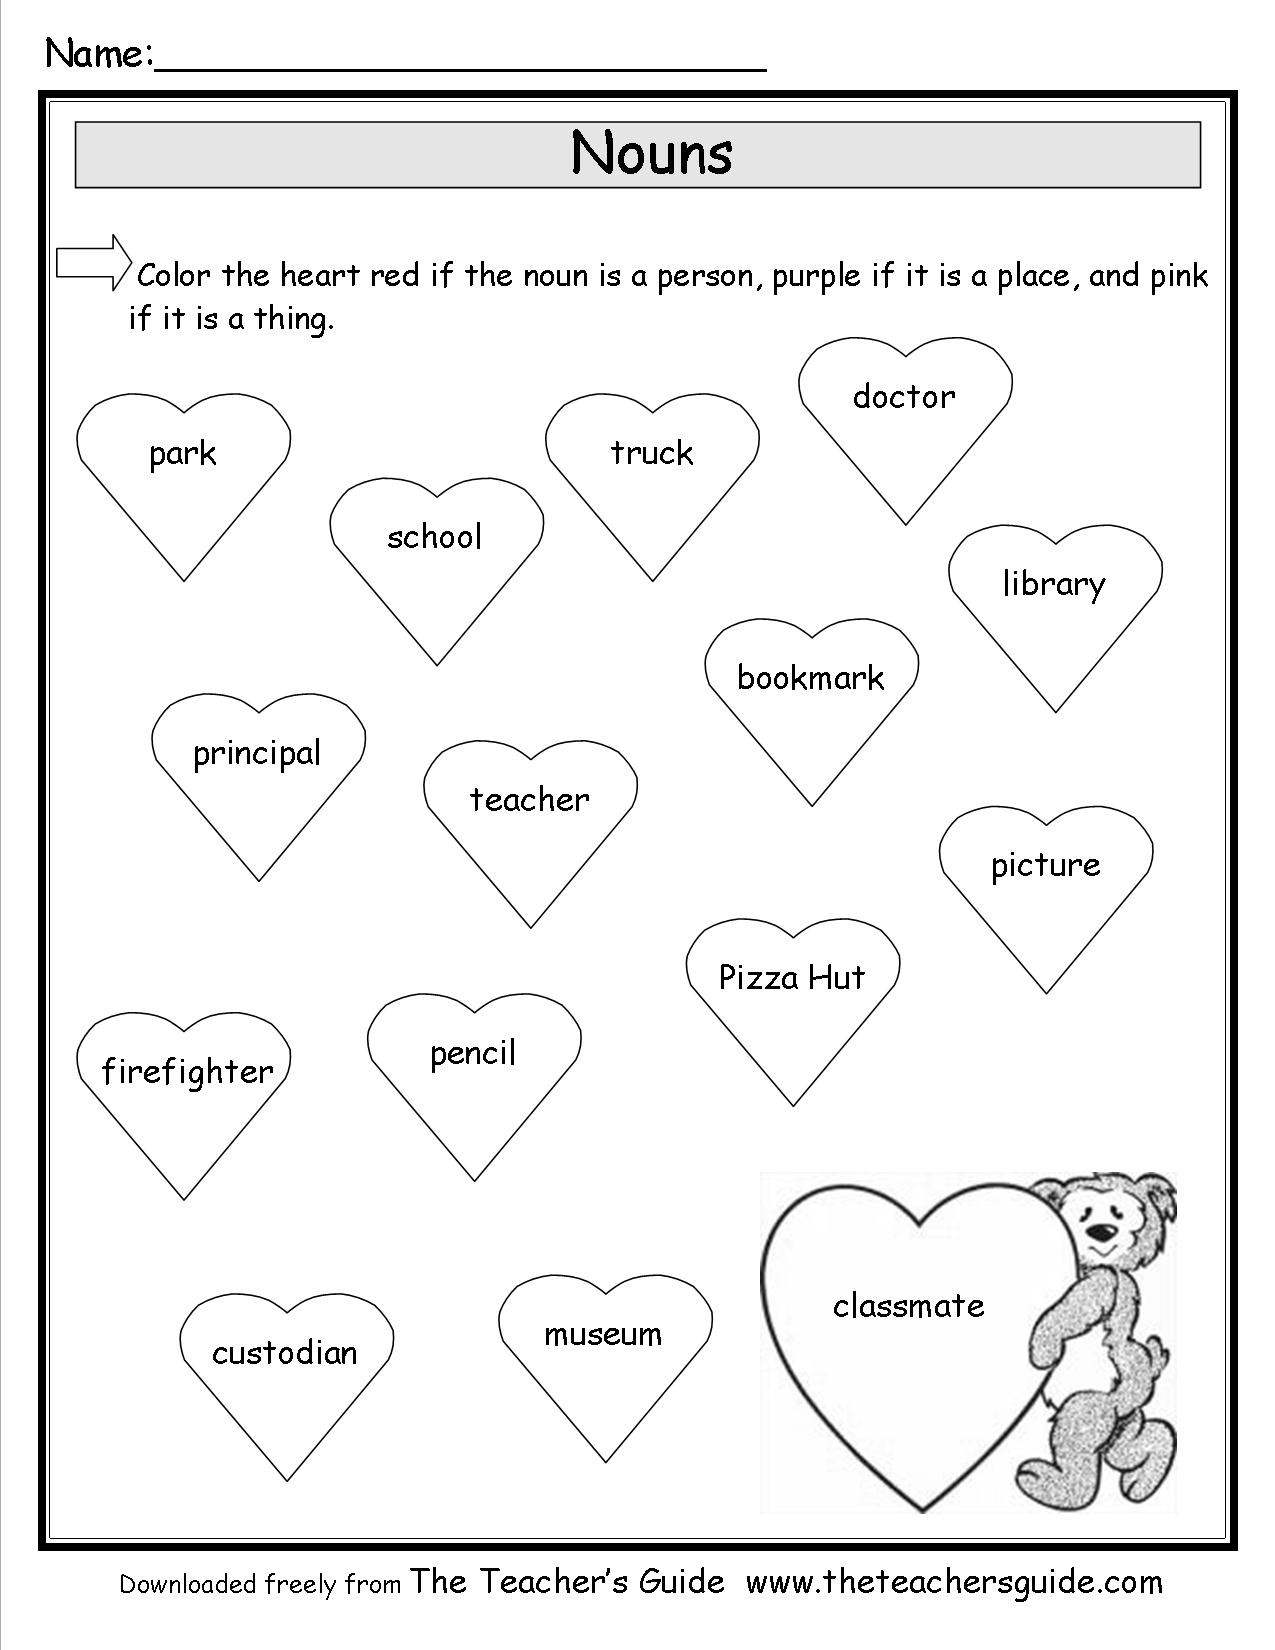 Valentine's Day Lesson Plans, Themes, Printouts, Crafts - Free Printable Valentine's Day Stencils